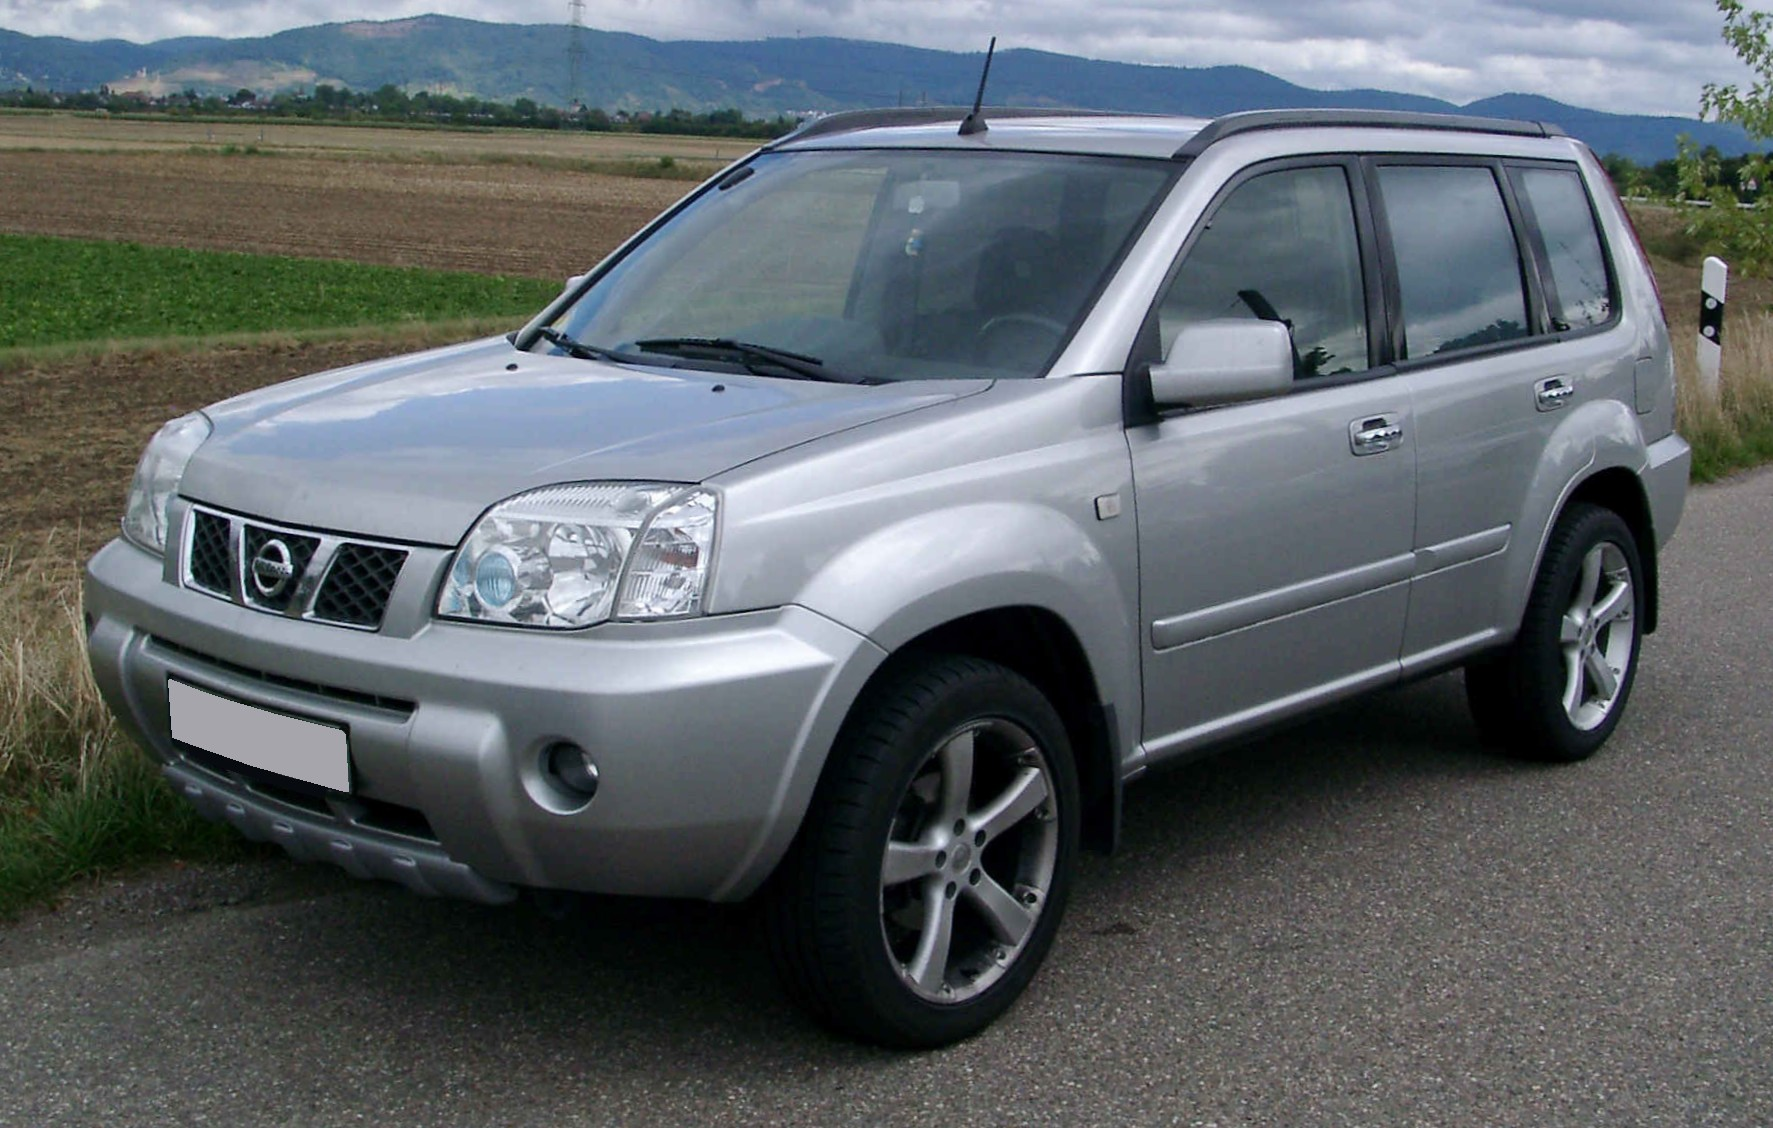 hight resolution of file nissan x trail front 20080808 jpg